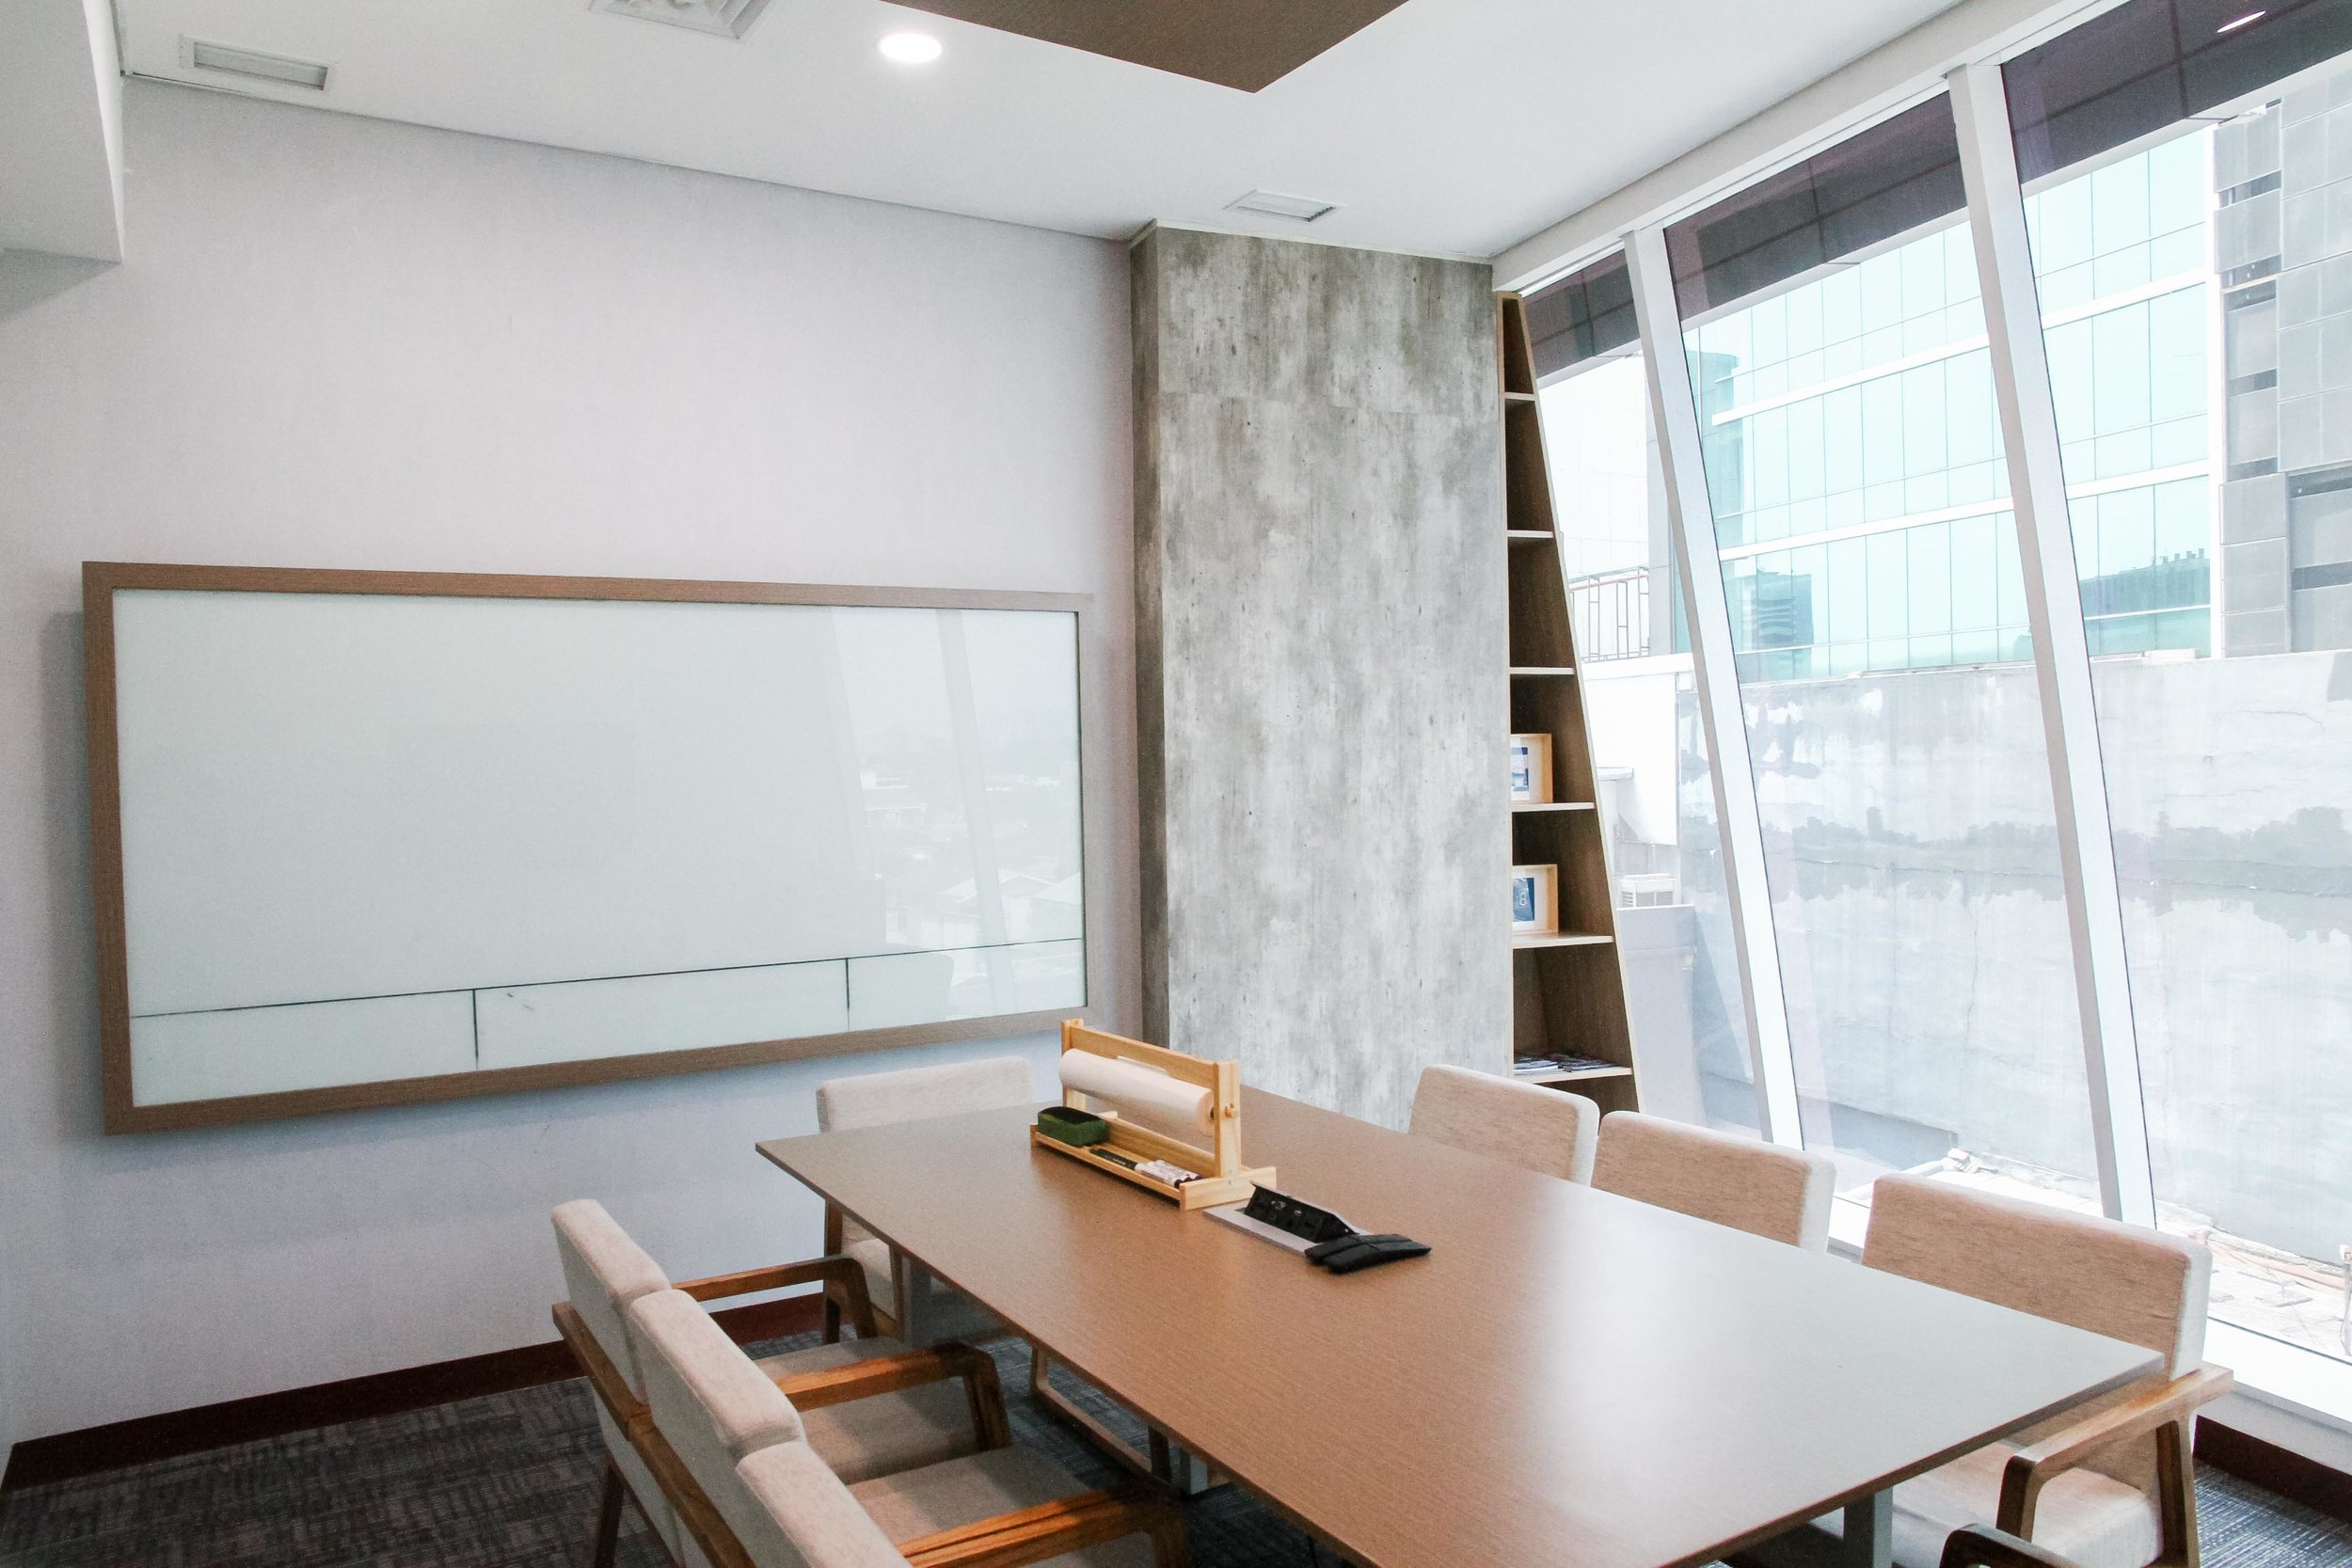 Our meeting rooms are designed with a combination of simple yet professional Scandinavian design and Indonesian wooden flair